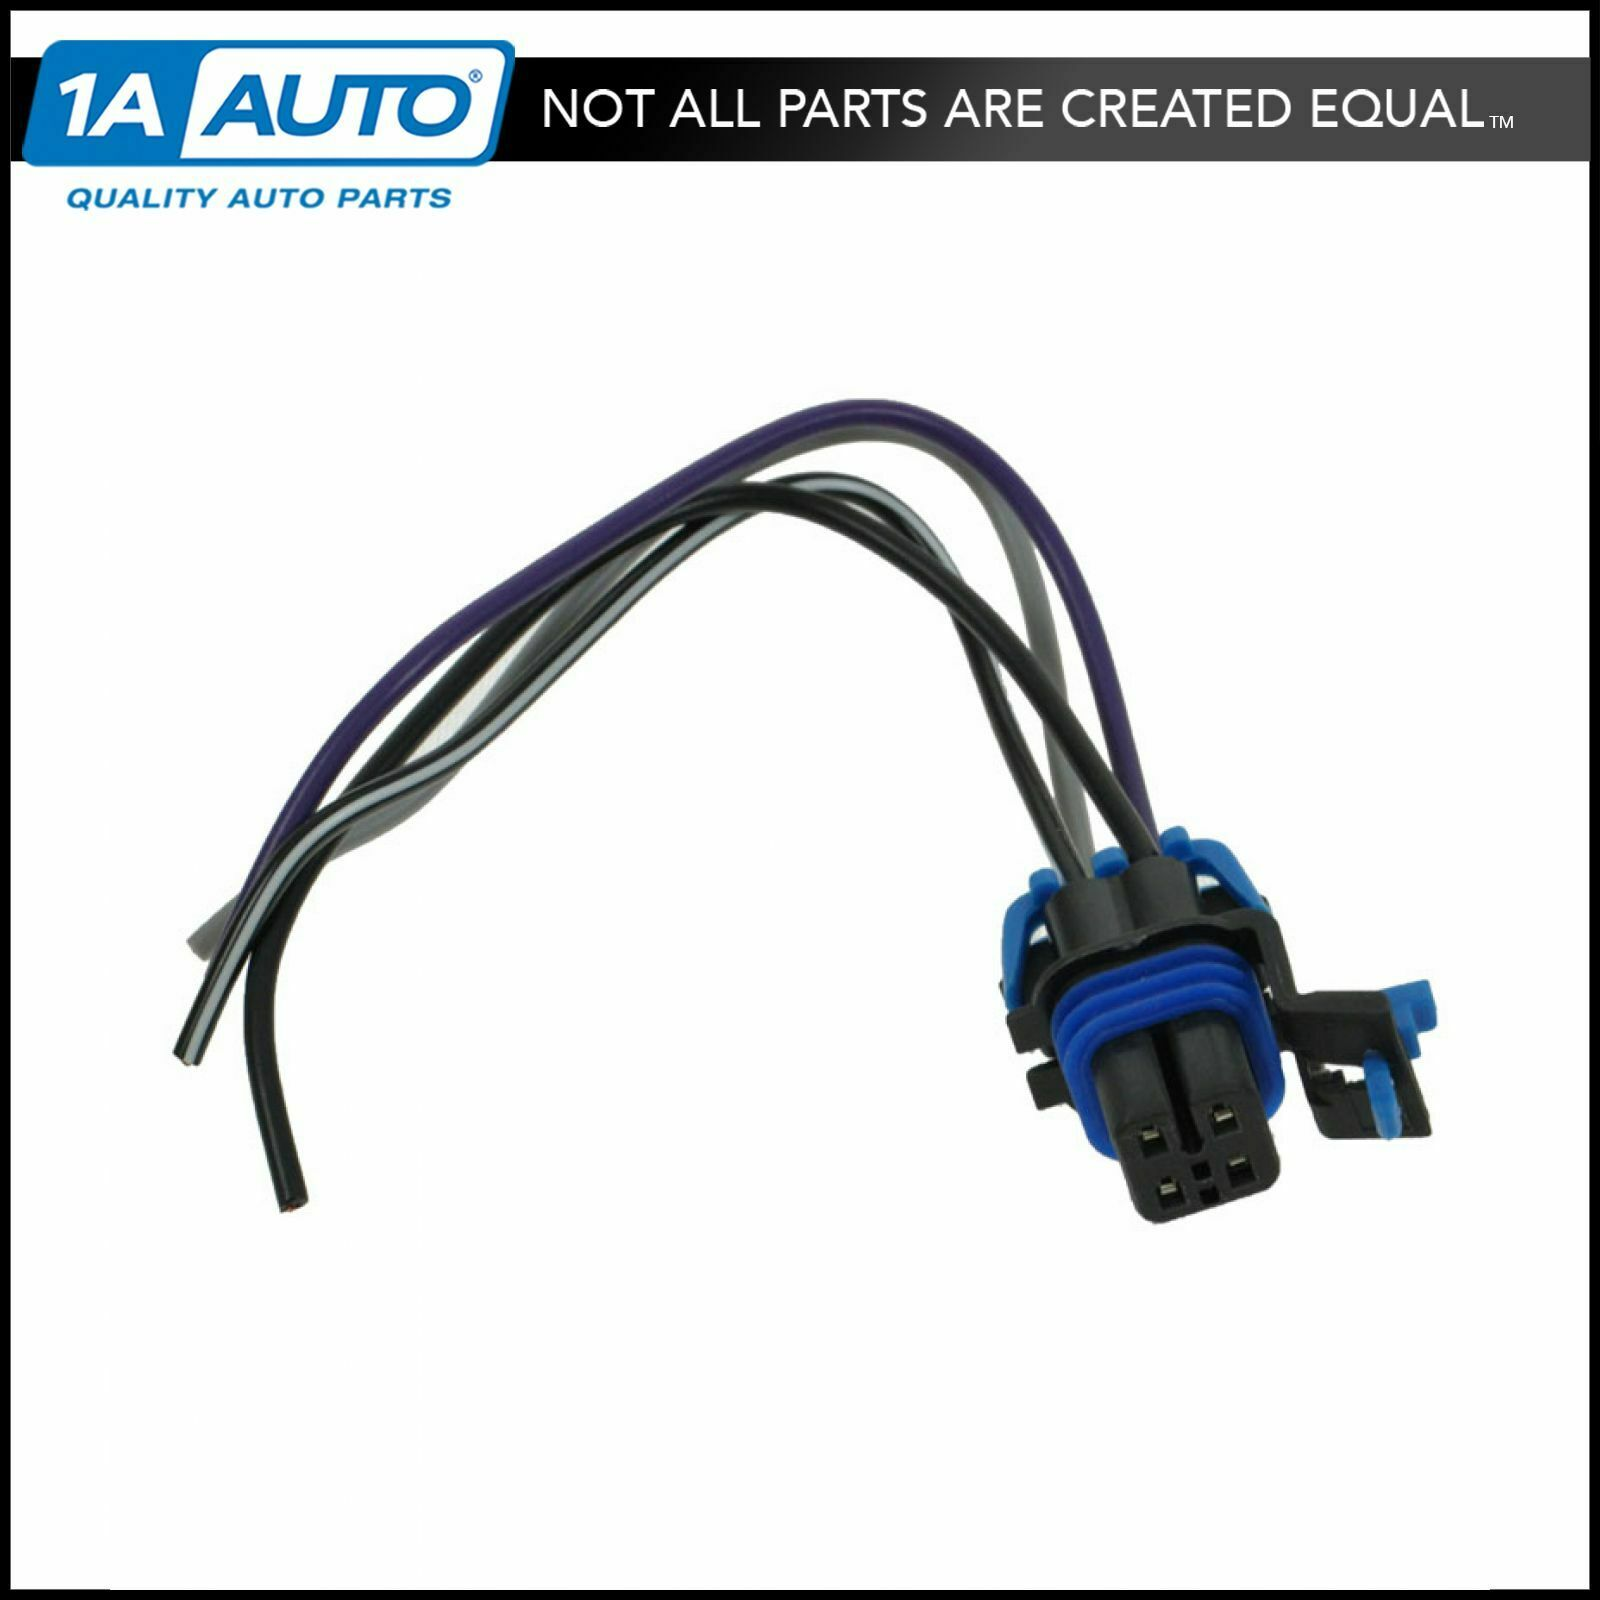 Fuel Pump Wiring Harness with Square Connector 4 Wire Pigtail for Chevy GM  1 of 2Only 3 available ...